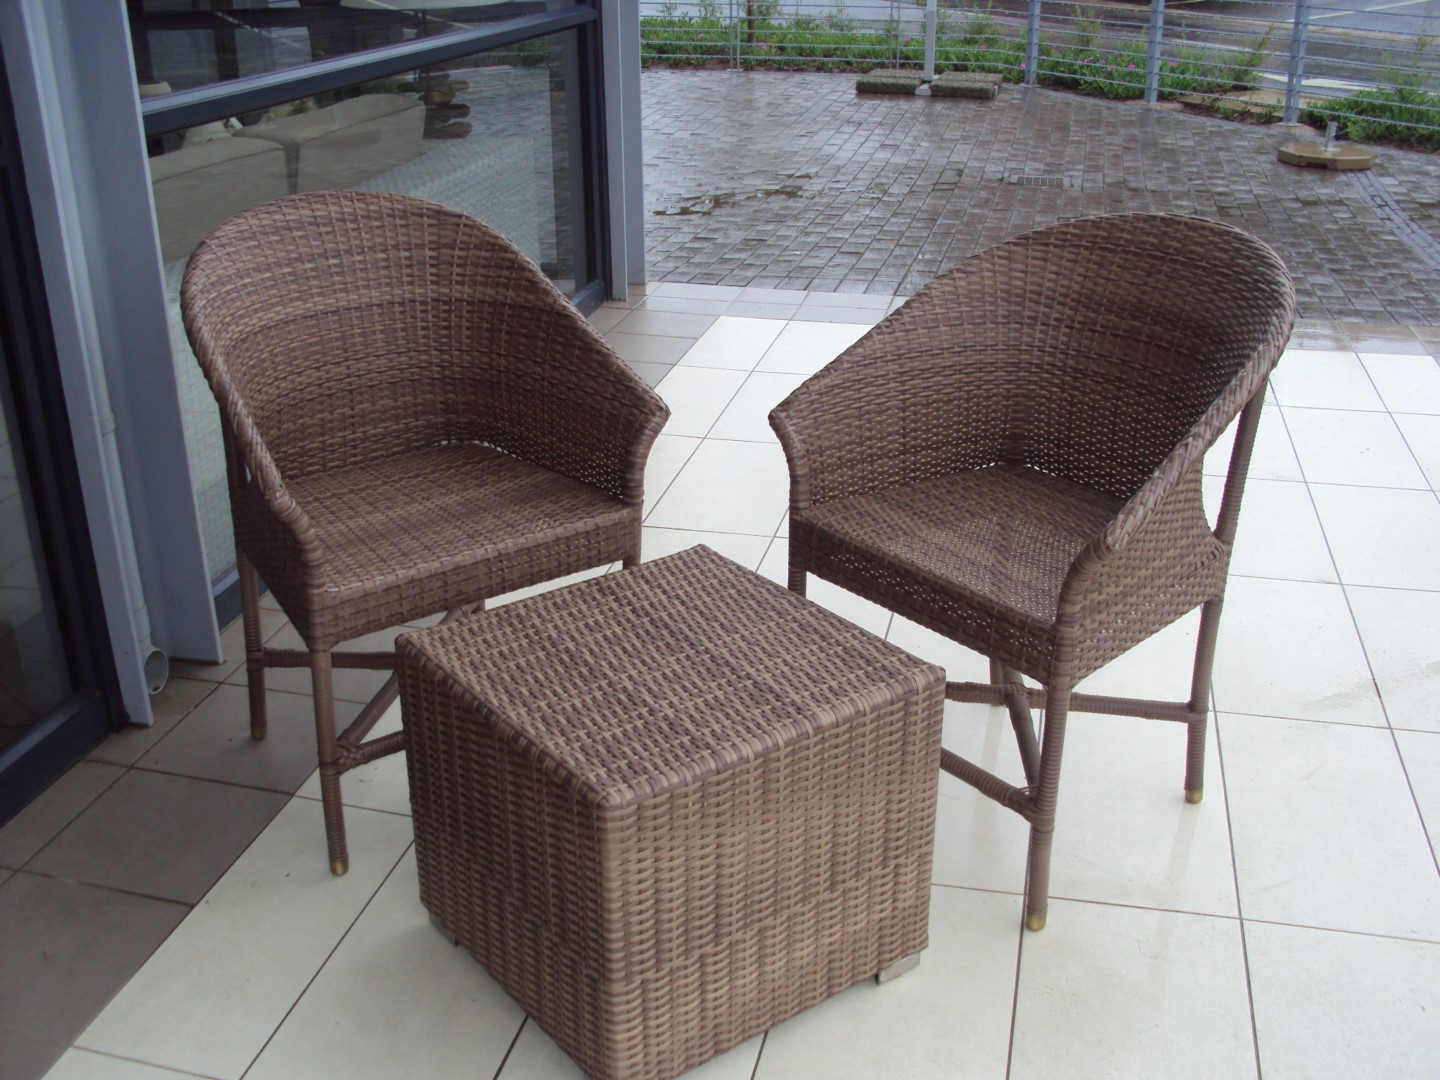 Two chairs an an ottoman